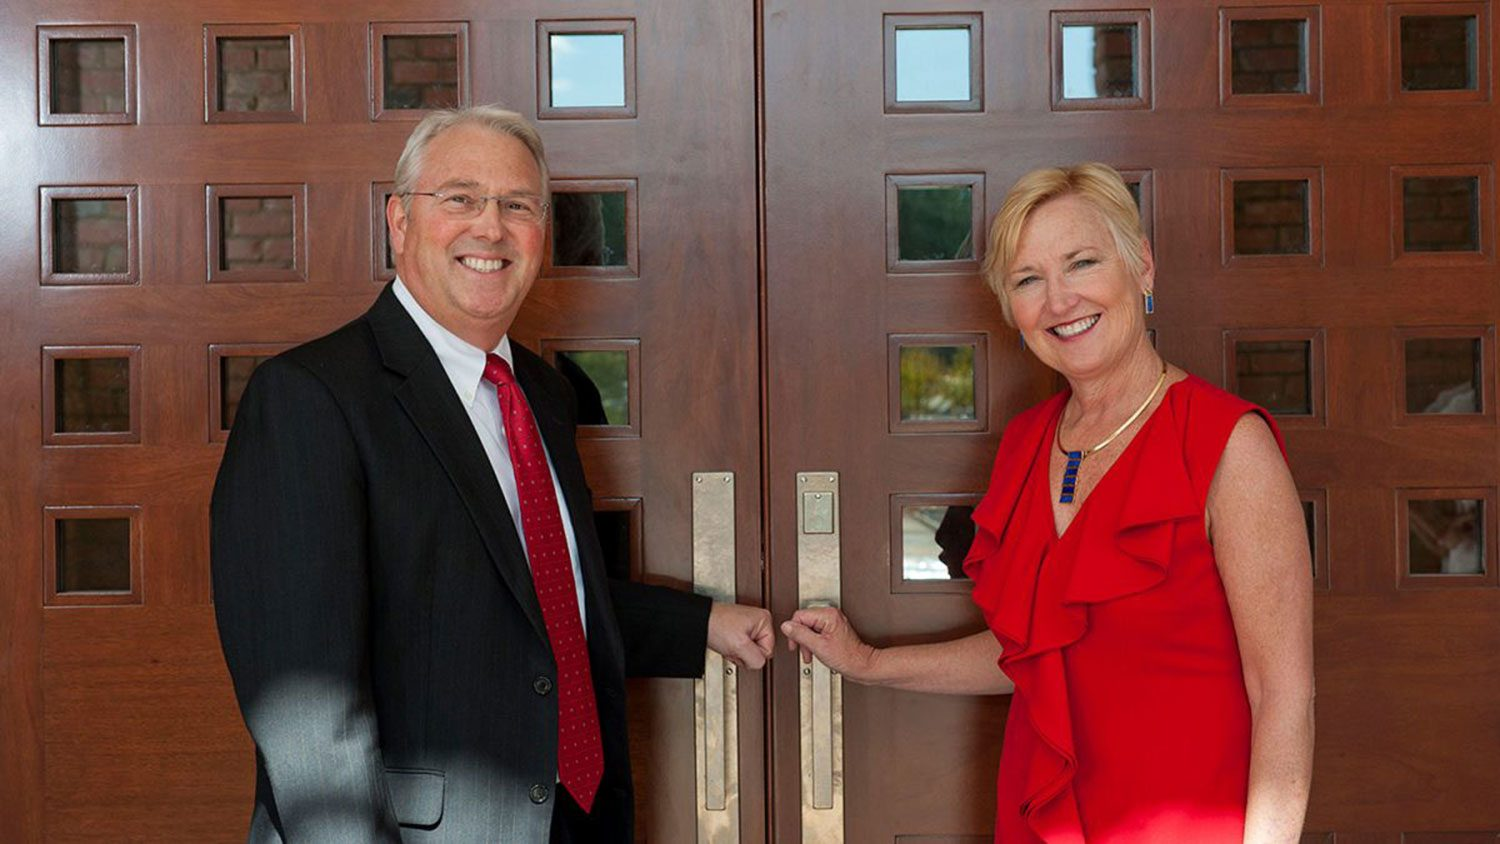 Randy and Susan Woodson at the front doors of The Point